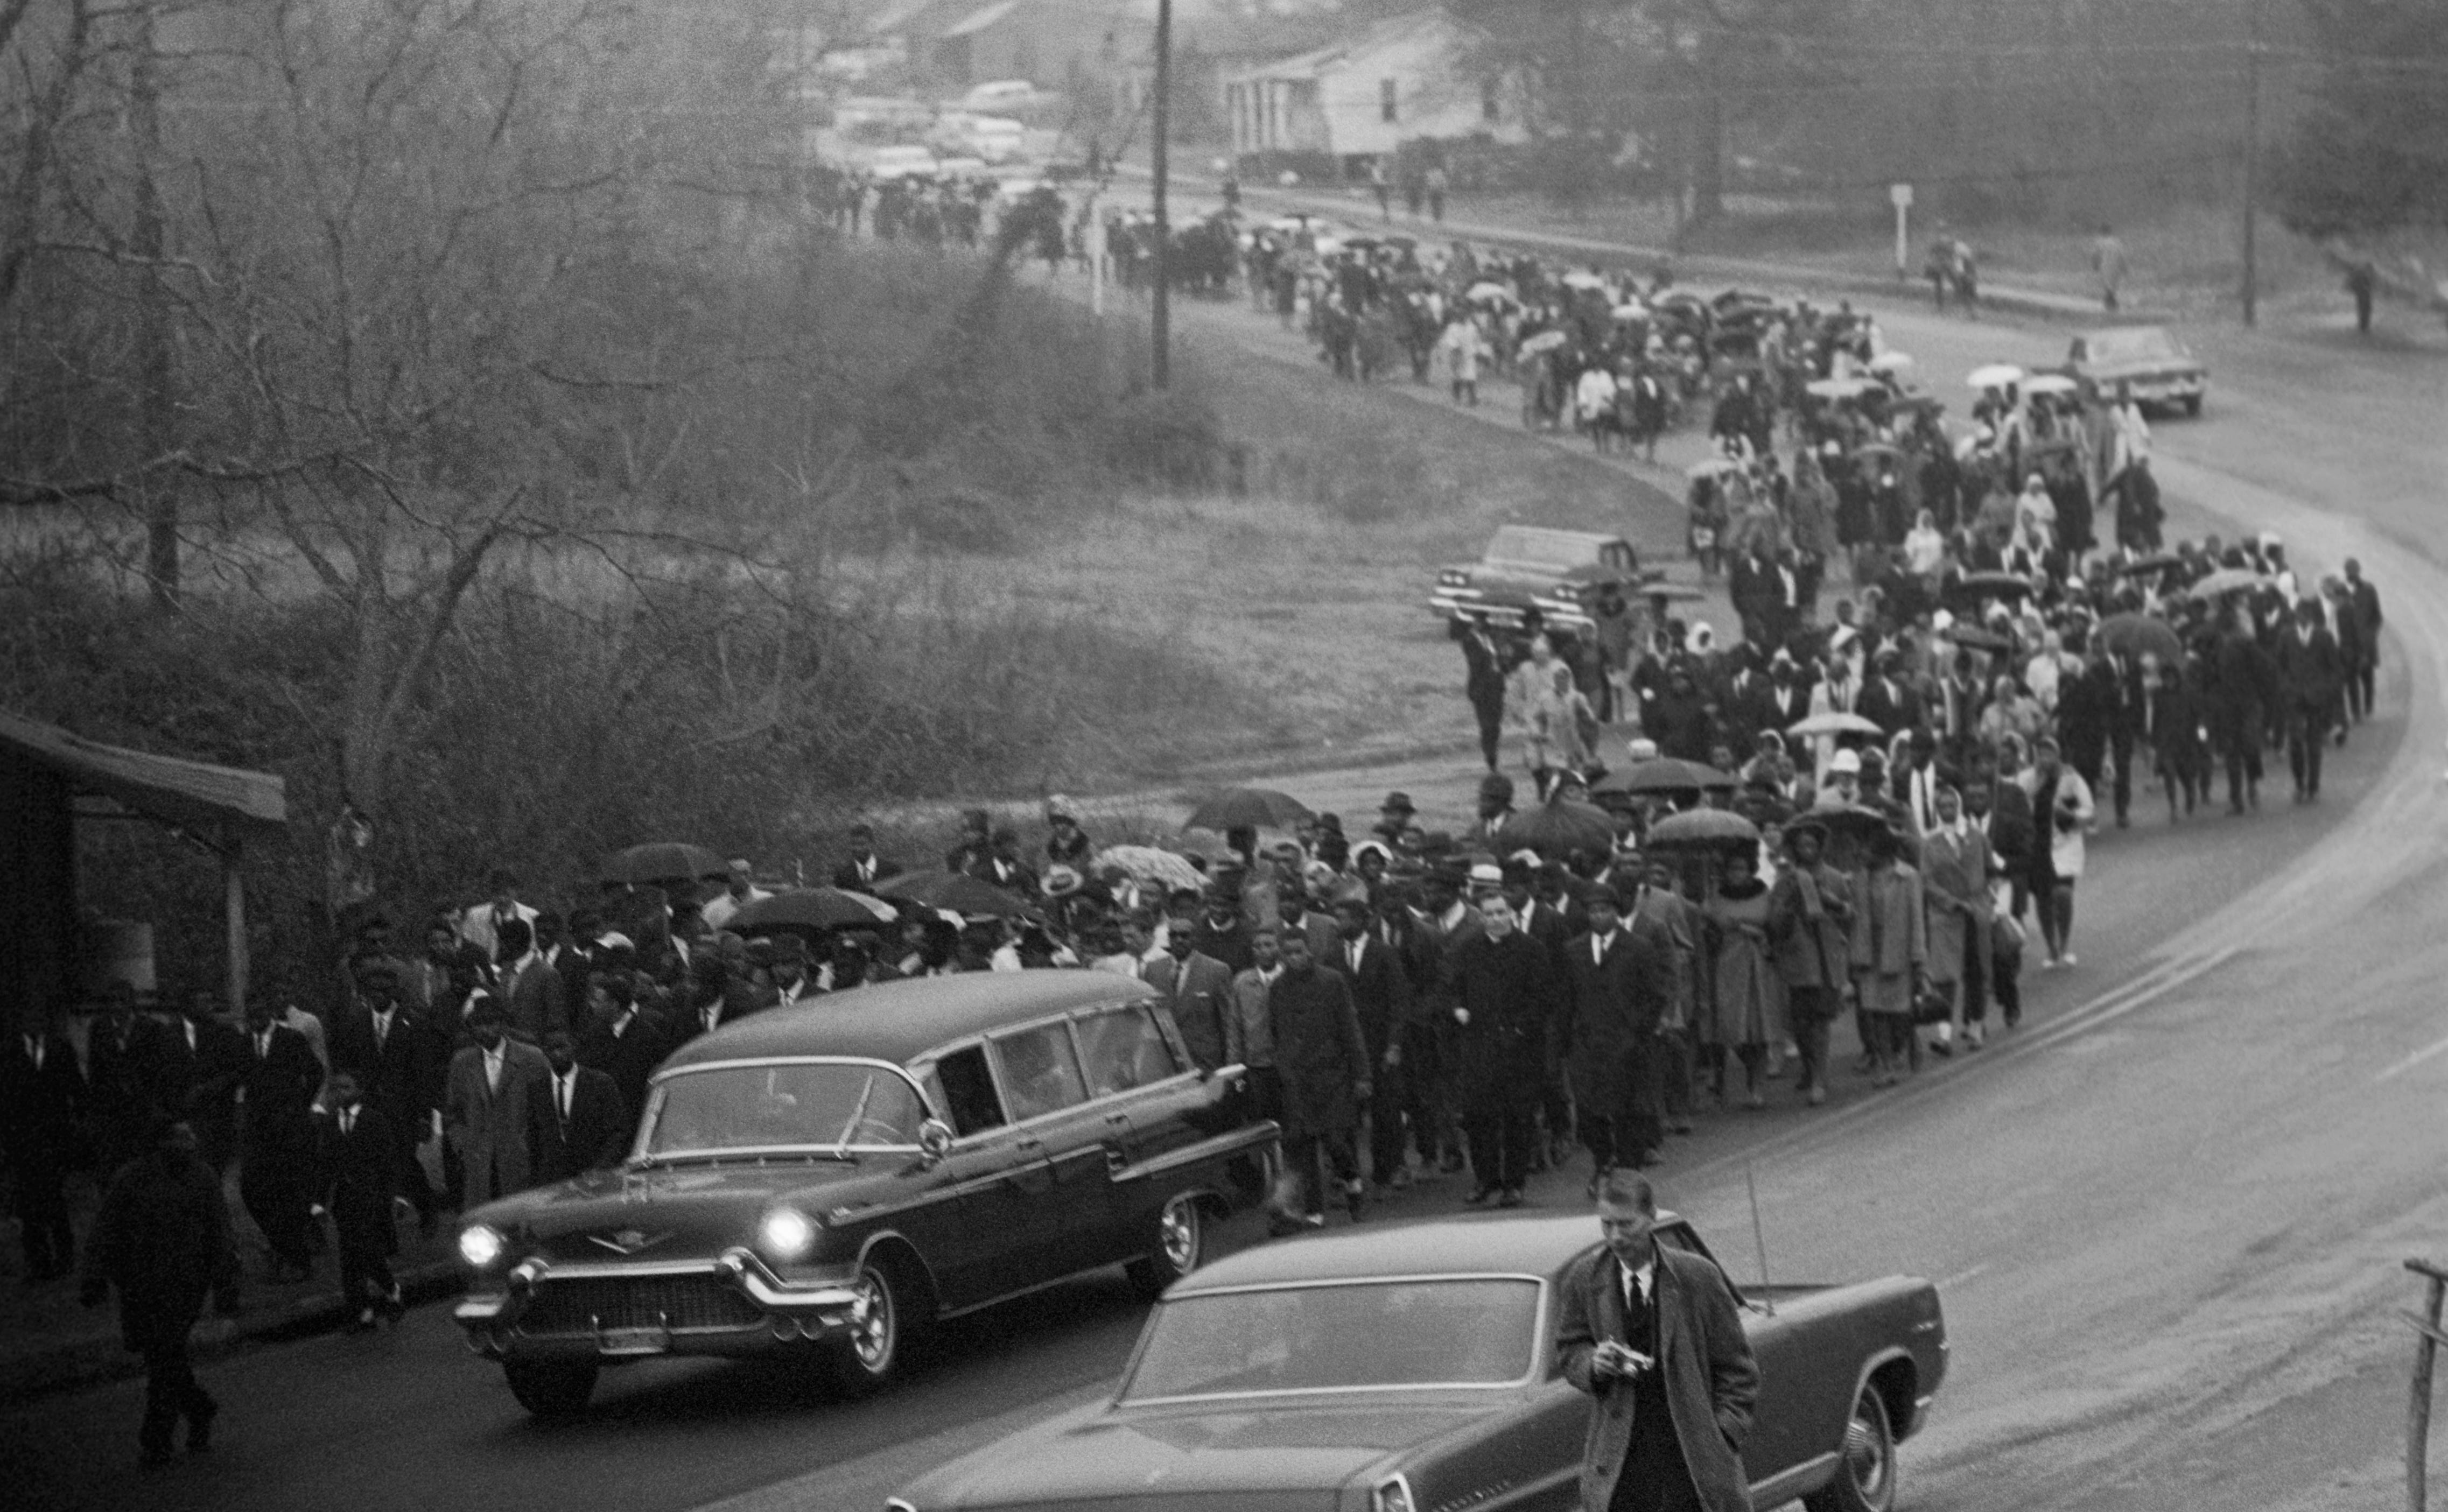 A hearse carrying the body of Jimmie Lee Jackson drives slowly in rain with an estimated 700 people, mostly African American, following the cemetery where Jackson is to be lain. Jackson was shot in Marion February 18, during a night demonstration and died in Selma Hospital. Two funerals were held for the civil rights protester with Dr. Martin Luther King giving the eulogy.